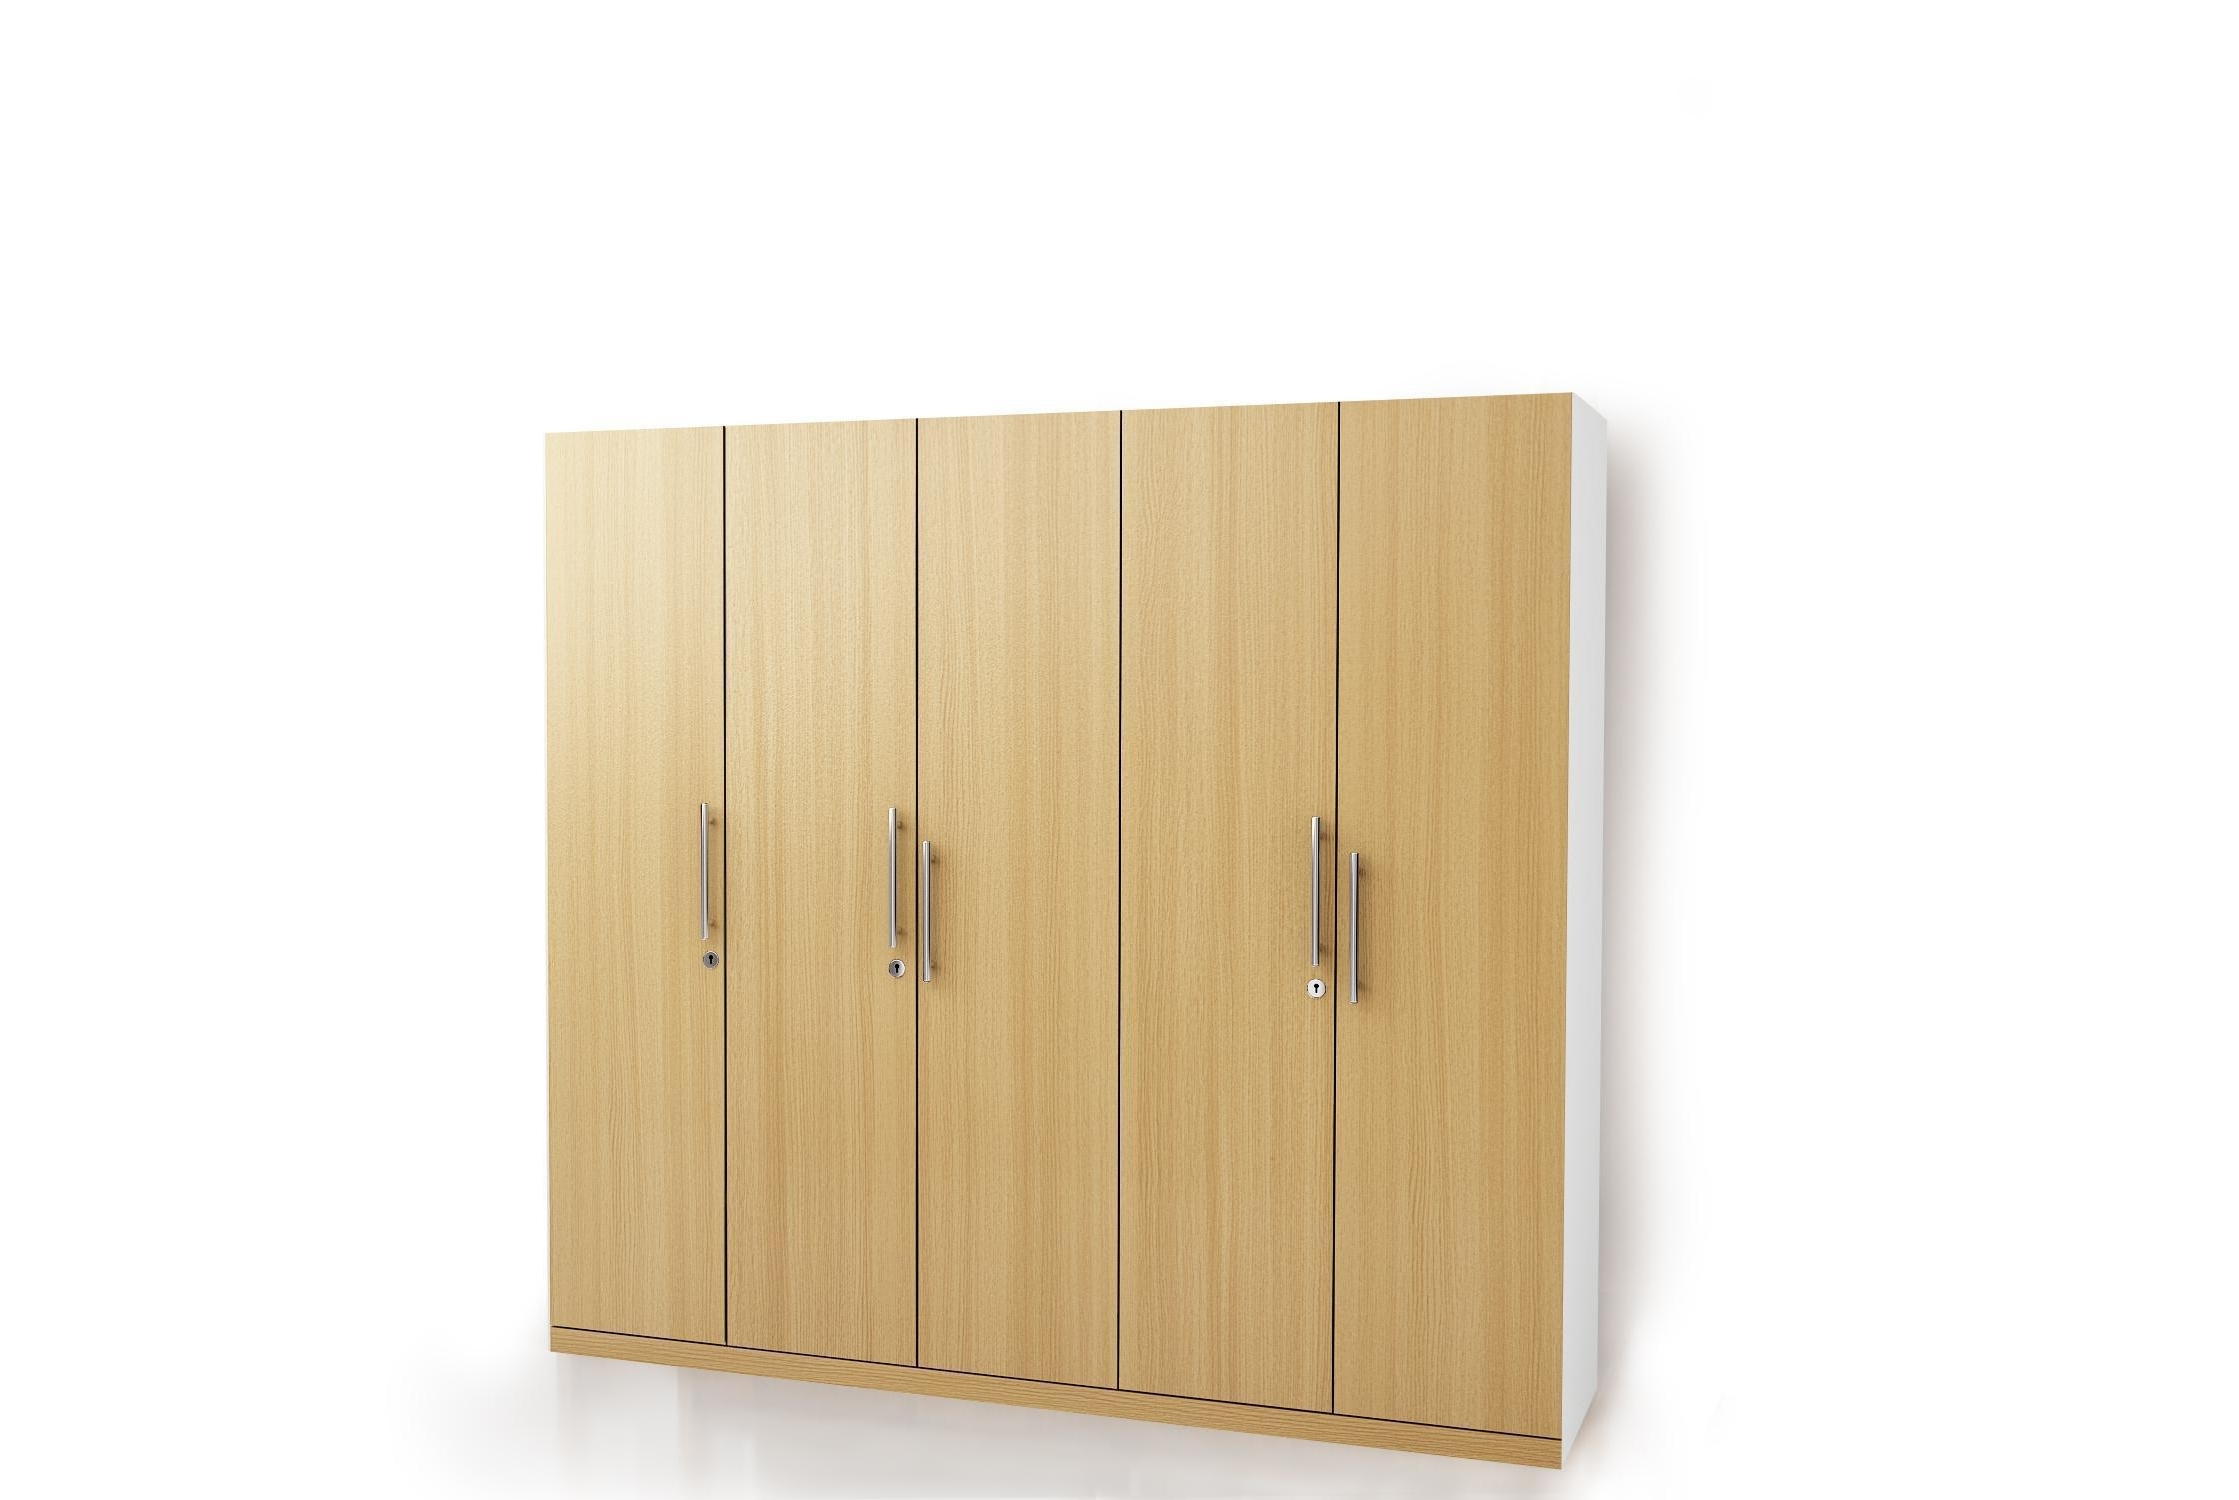 Trendy Low Height Wardrobes Childrens Profile Sliding Wardrobe Doors With Regard To Childrens Tallboy Wardrobes (View 14 of 15)